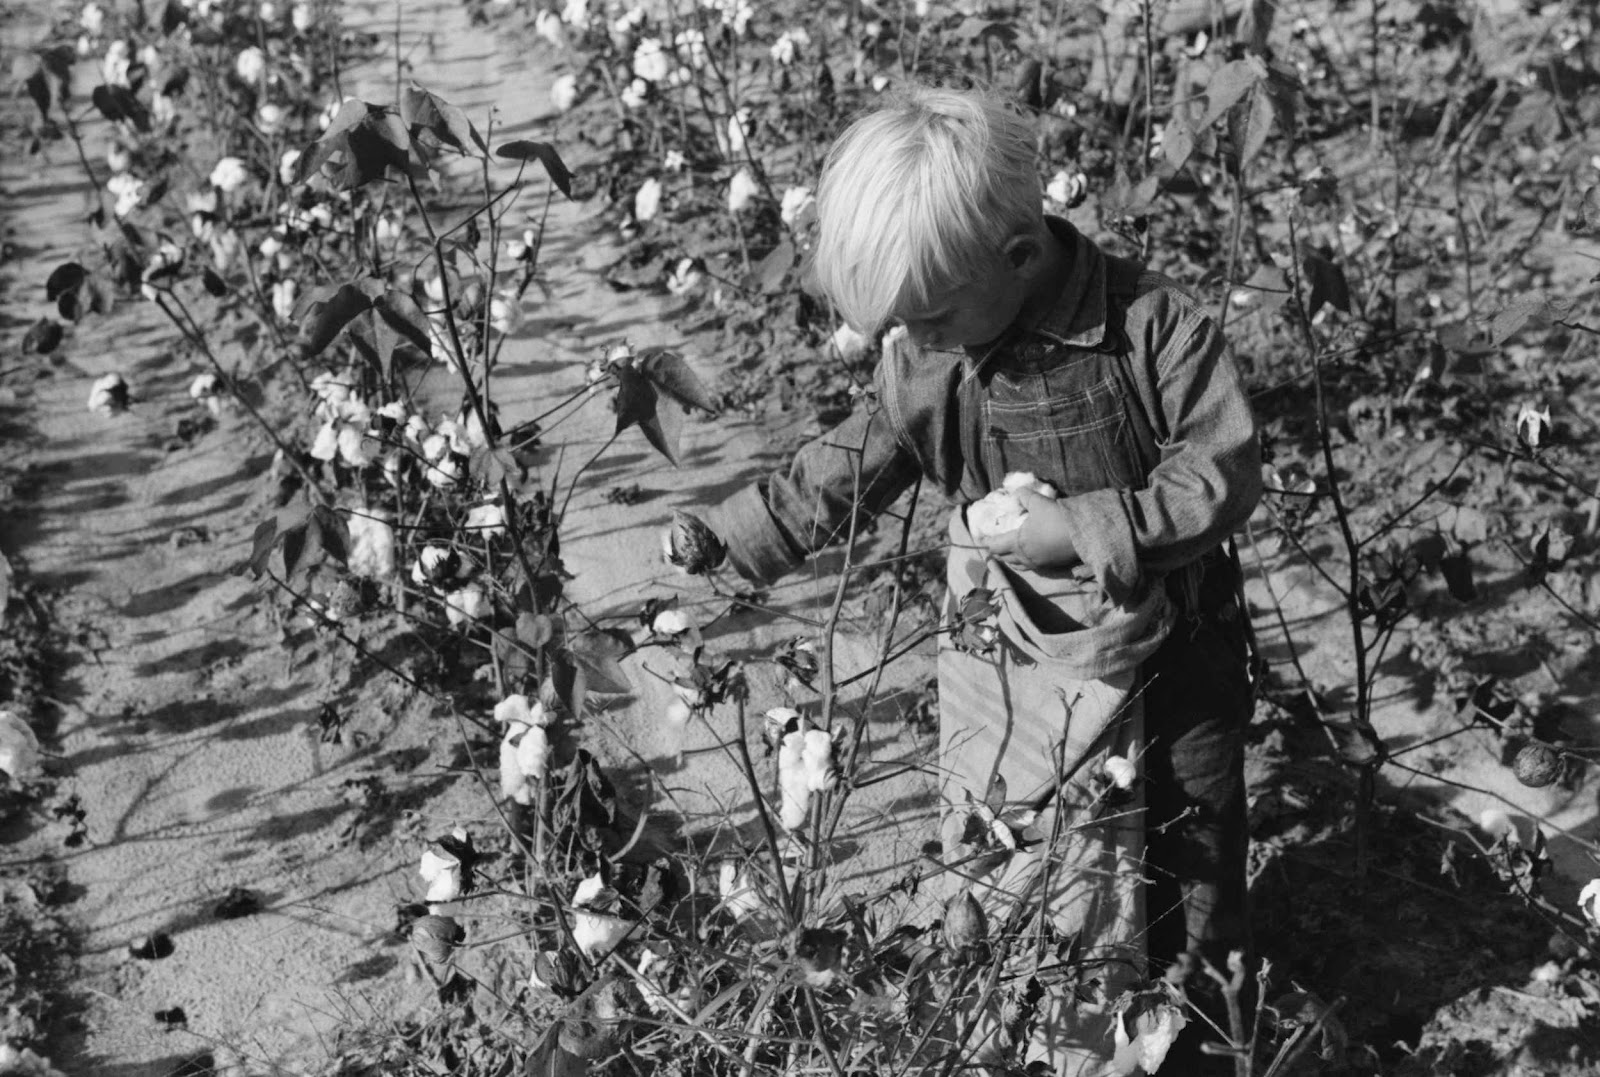 picking cotton If we were picking cotton for my granddaddydinnertime was a different story)))) my grandmother didn't really go to the field to pick cotton that i can remember, but she would come bring us water and she fixed lunch.